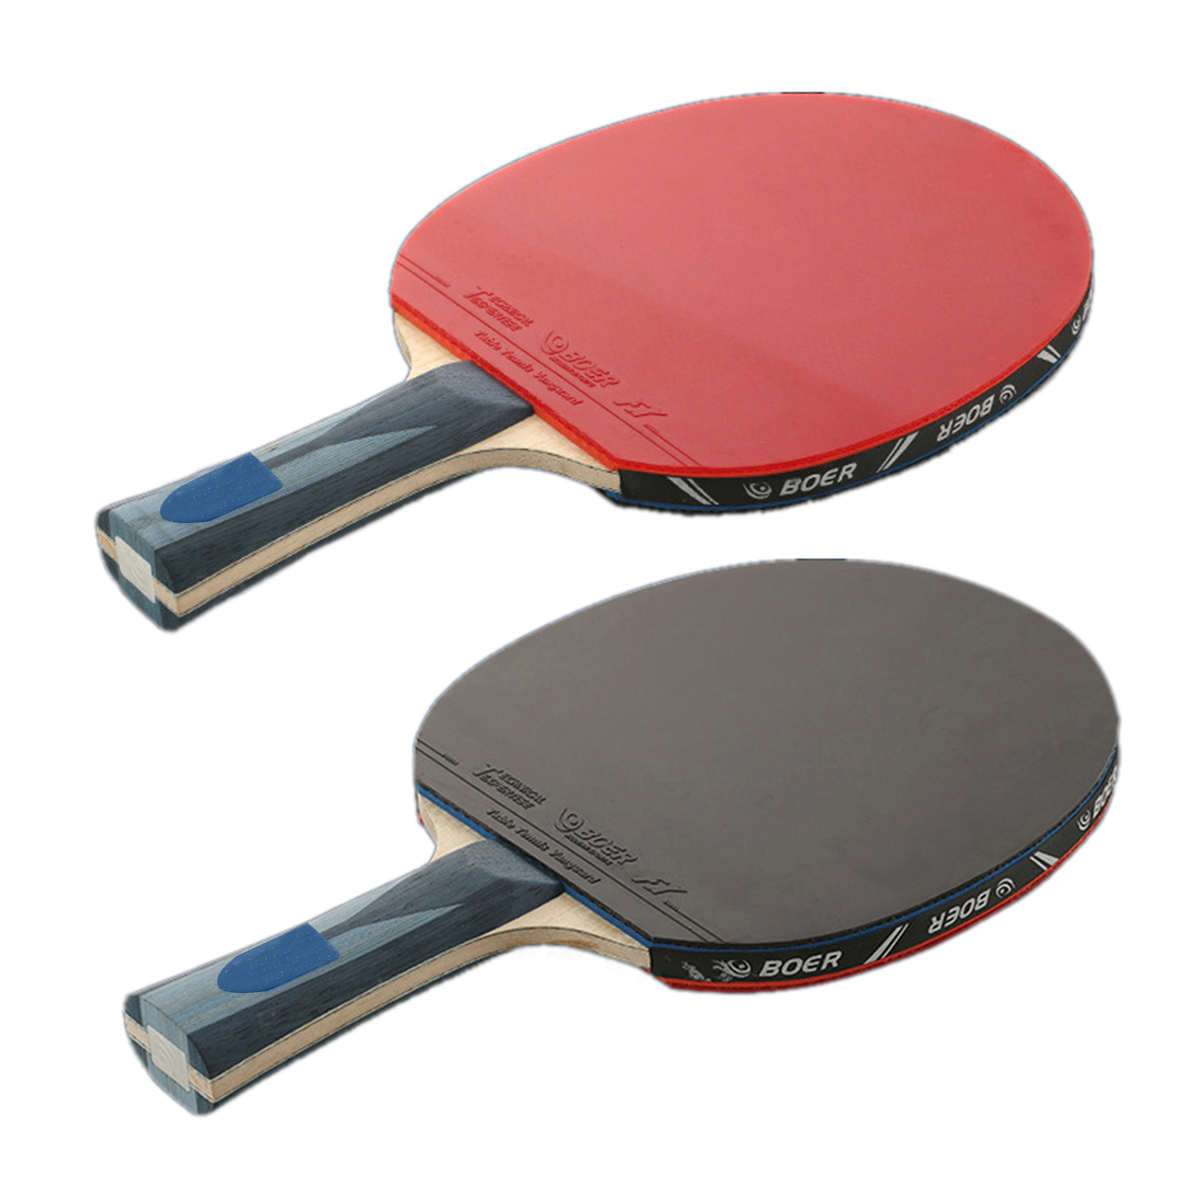 1pc Pro Carbon Table Tennis Racket Ping Pong Paddle Long